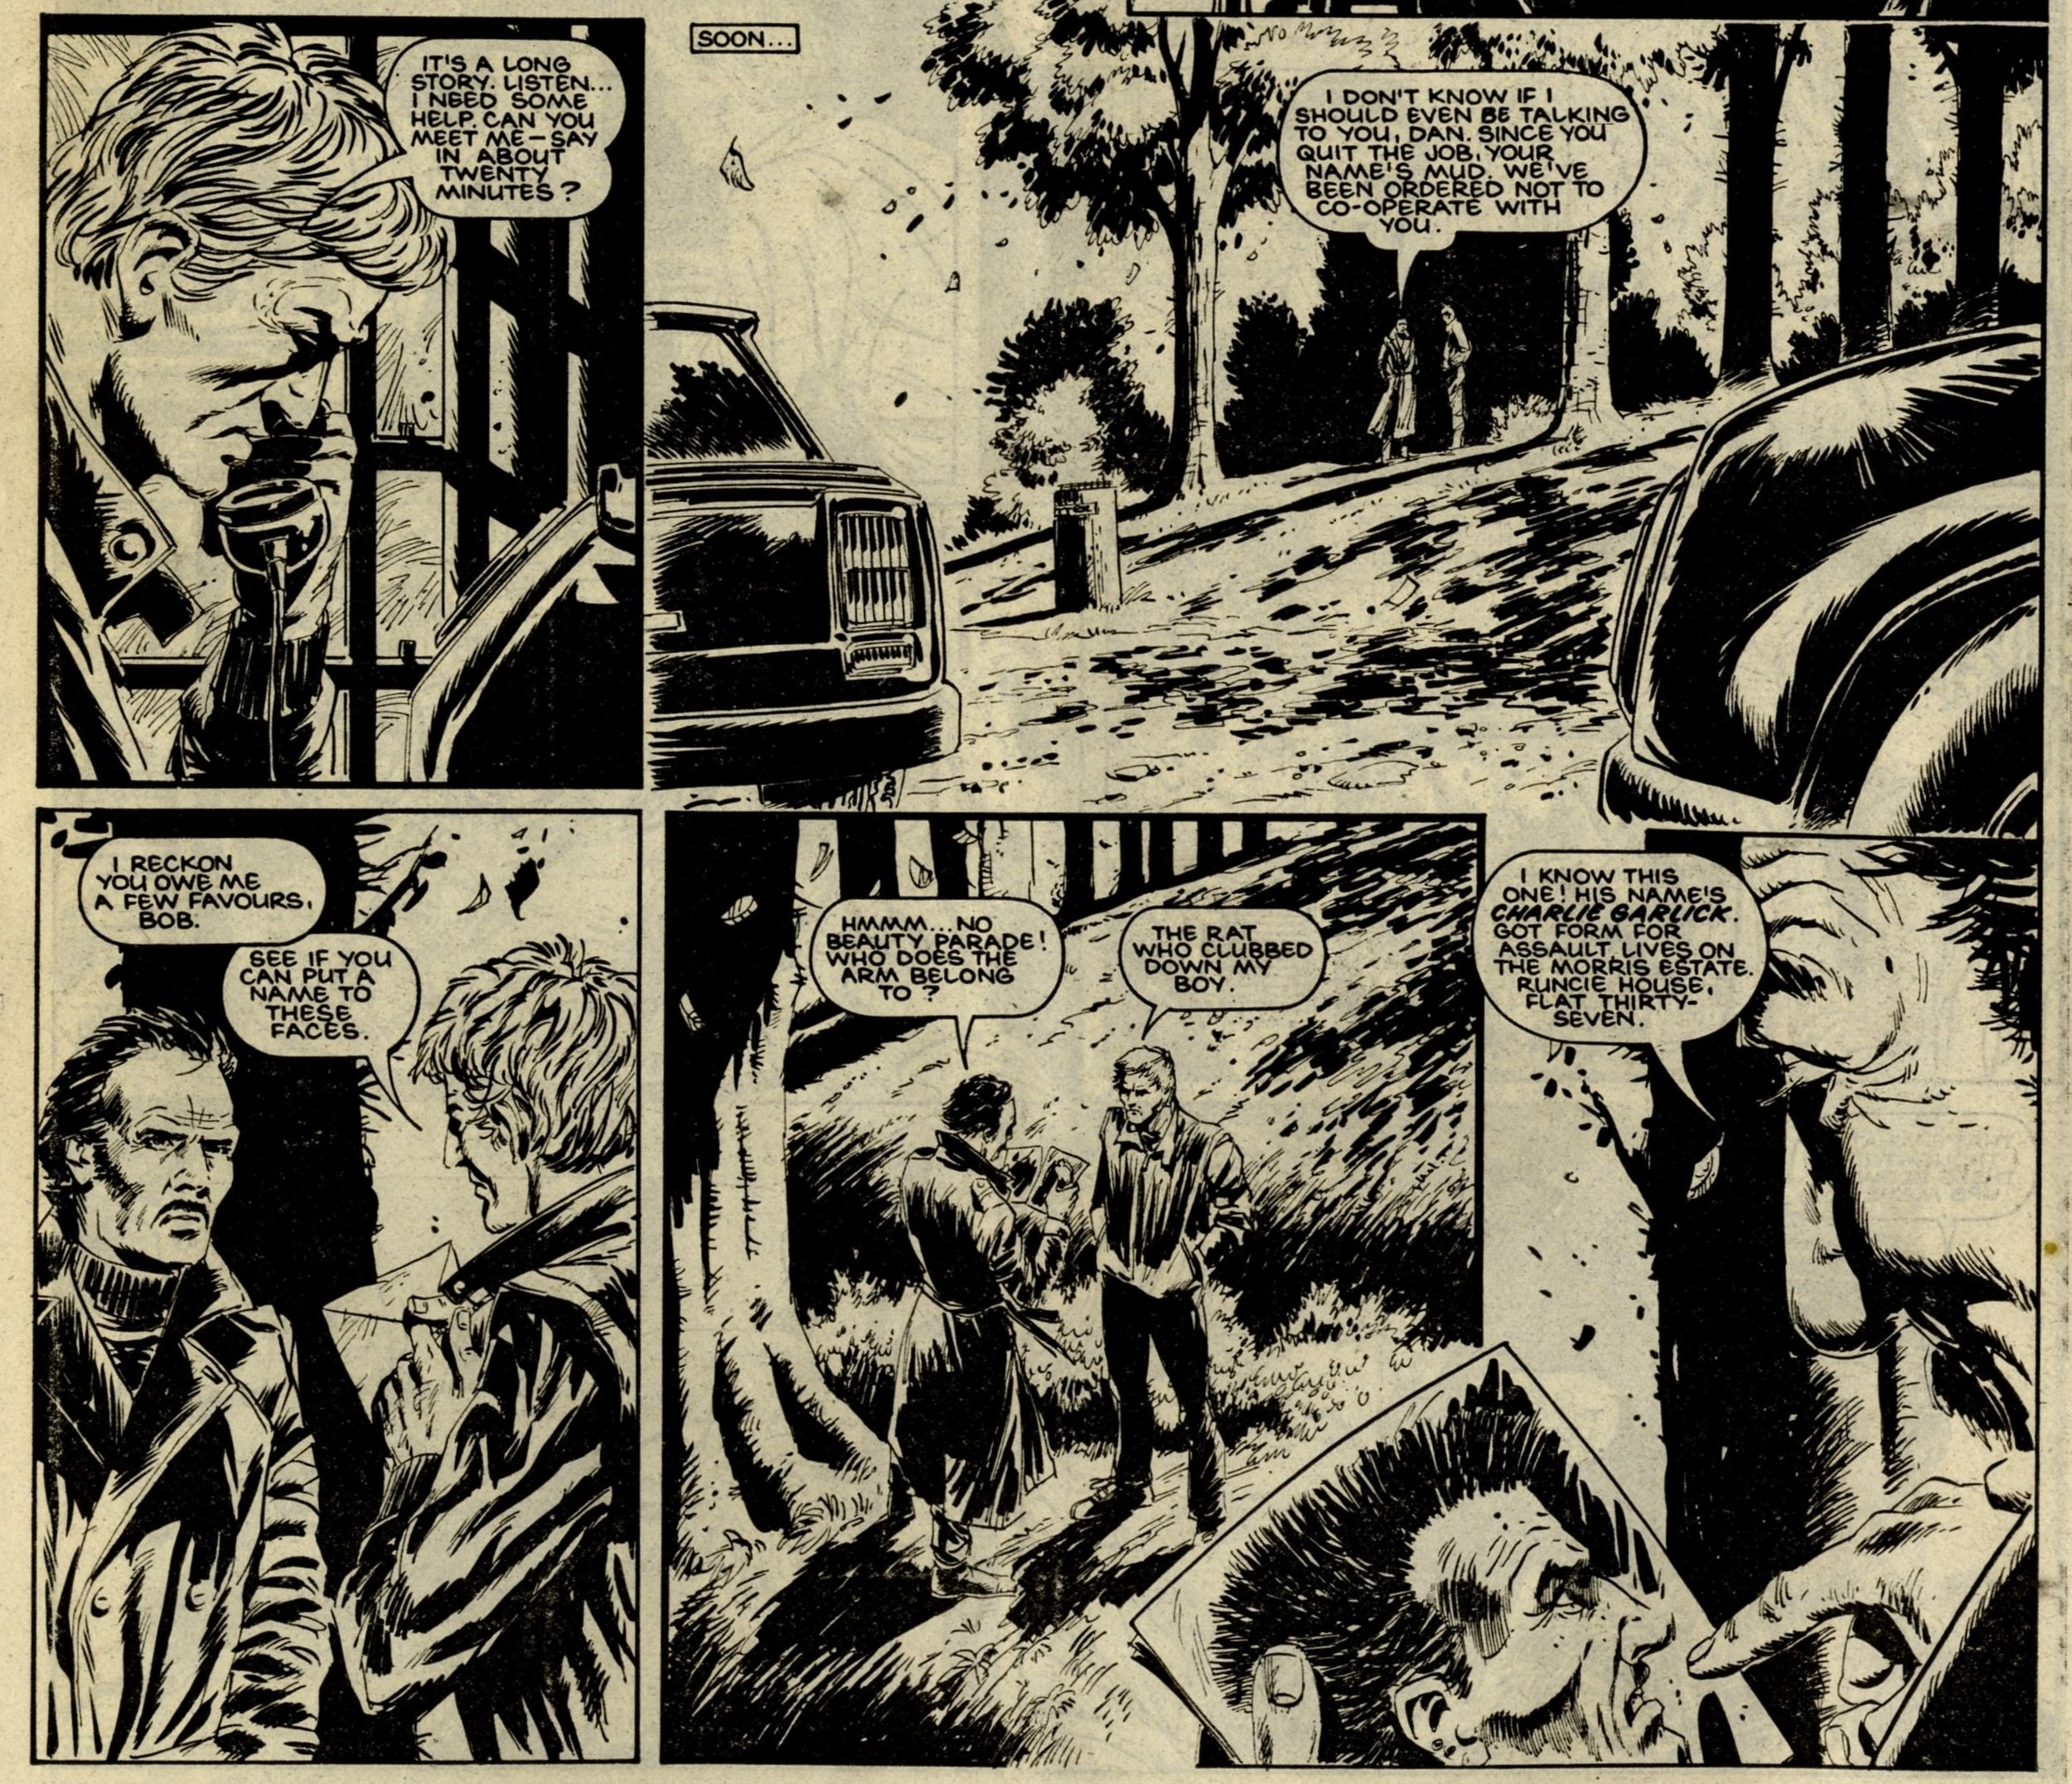 Harker's War: John Wagner and Alan Grant (writers), artist unknown